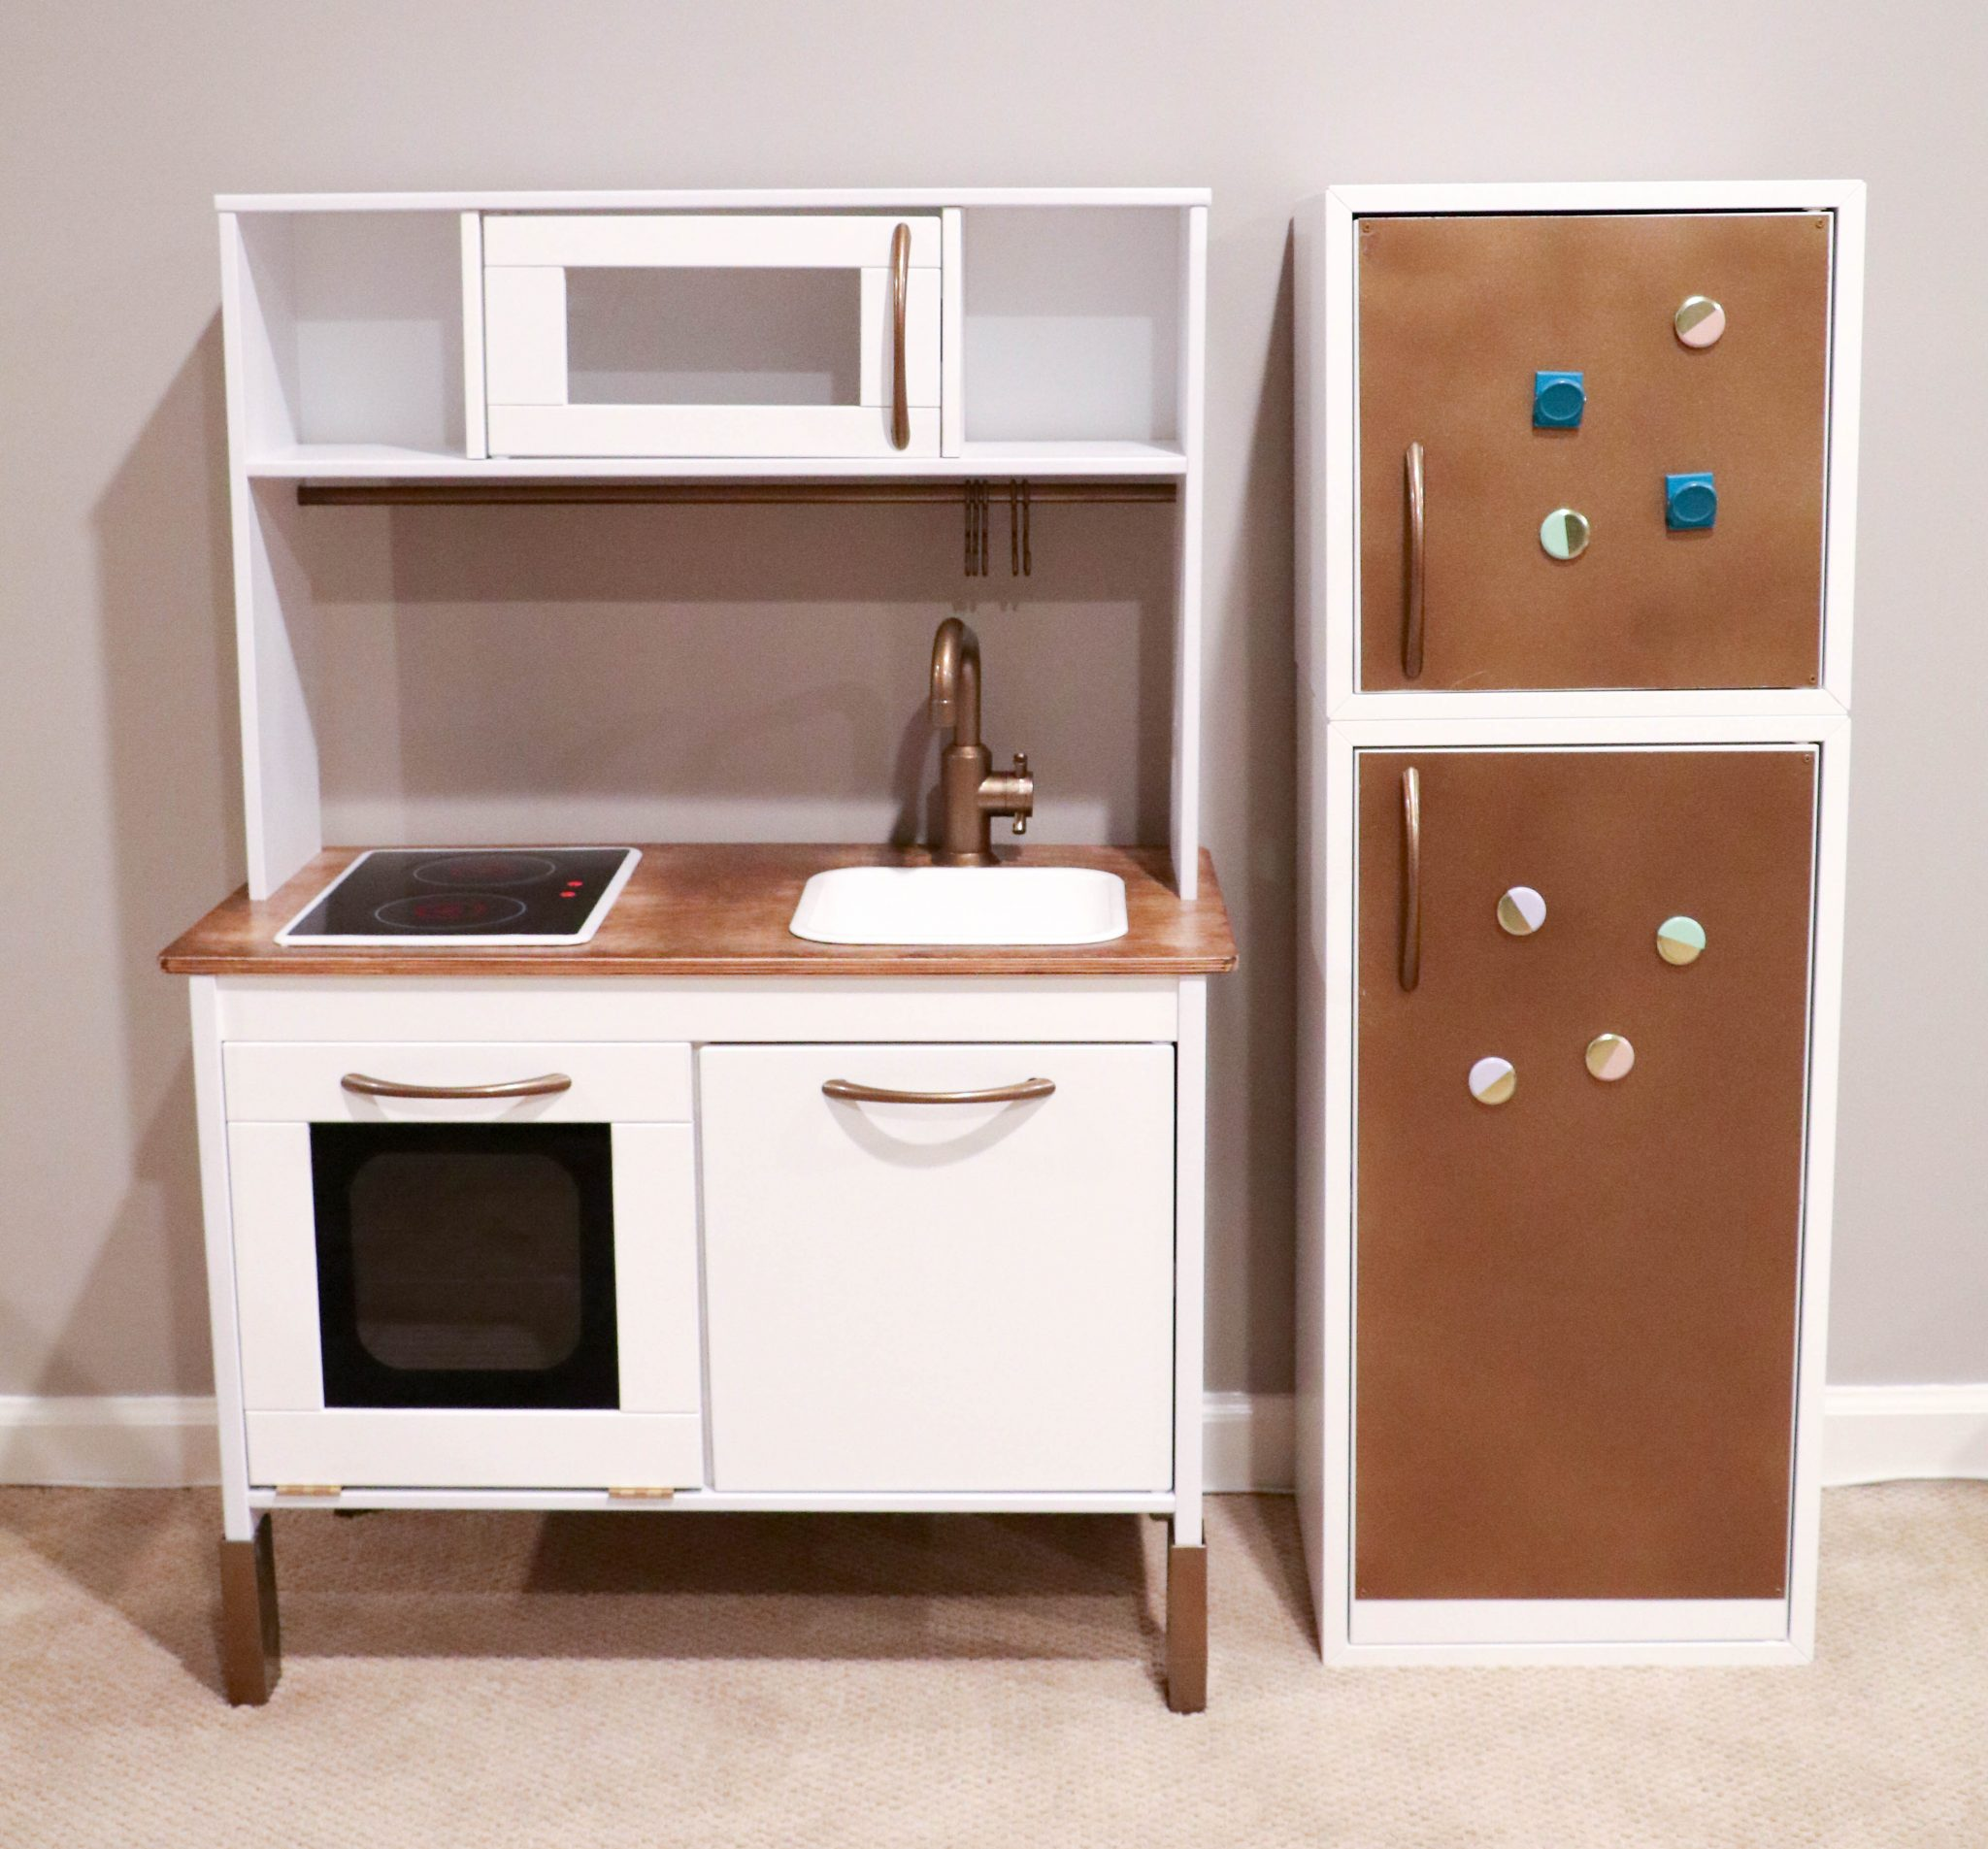 ikea hack building your child 39 s dream duktig play kitchen saving amy. Black Bedroom Furniture Sets. Home Design Ideas